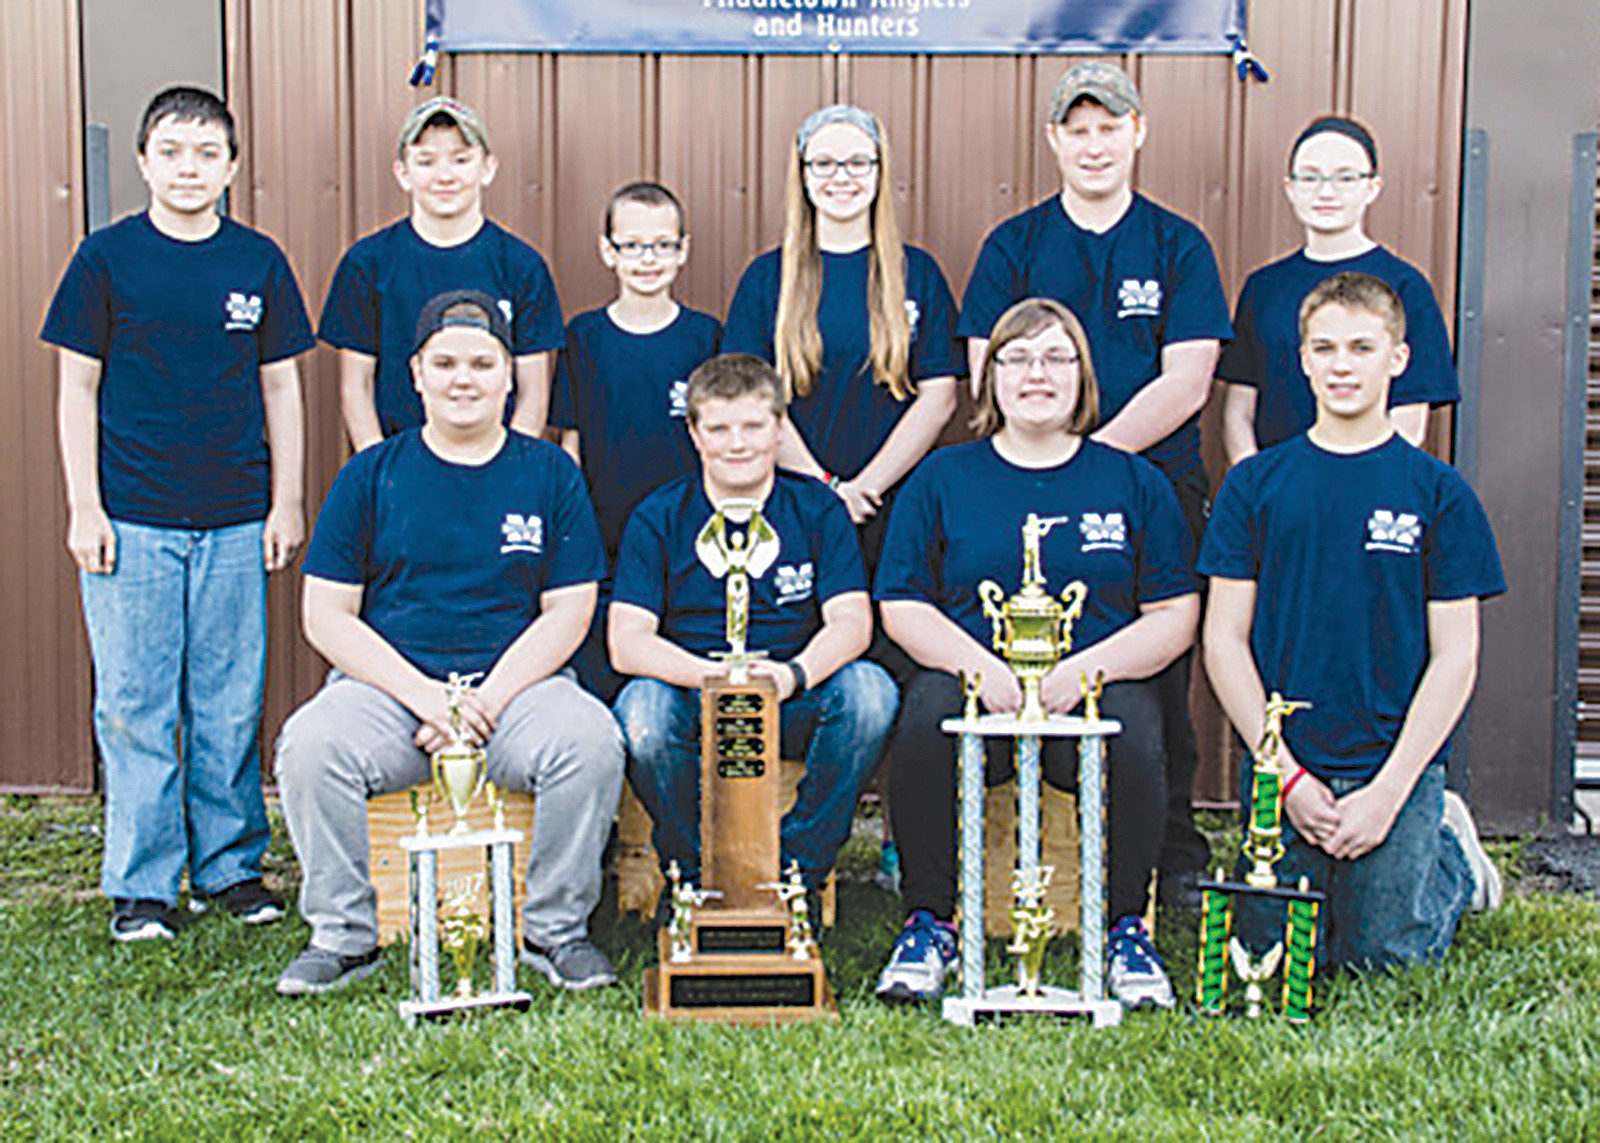 A new youth BB gun team from the Middletown Hunter's & Angler's Club took first place in the state championship match held in Harrisburg on April 8.